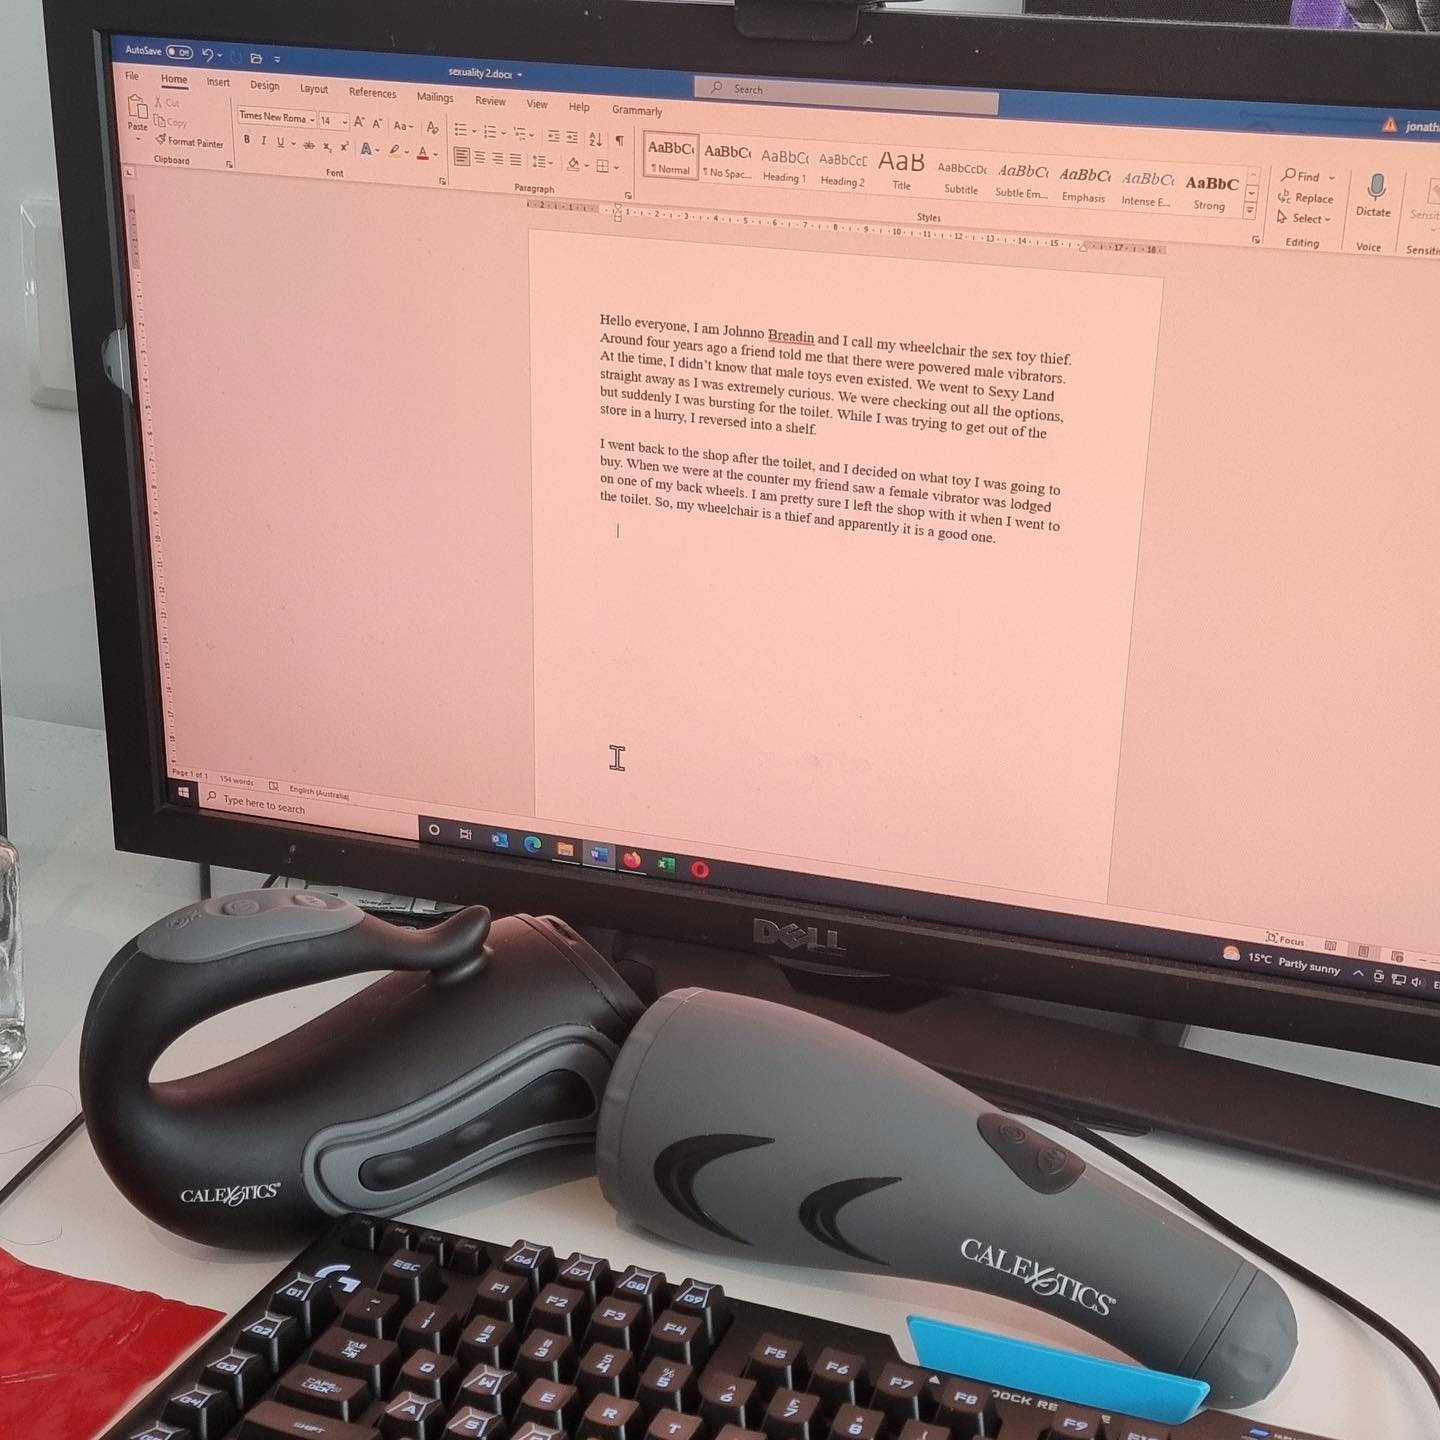 Working on my presentation for ARATA about sexual devices for people with disability.